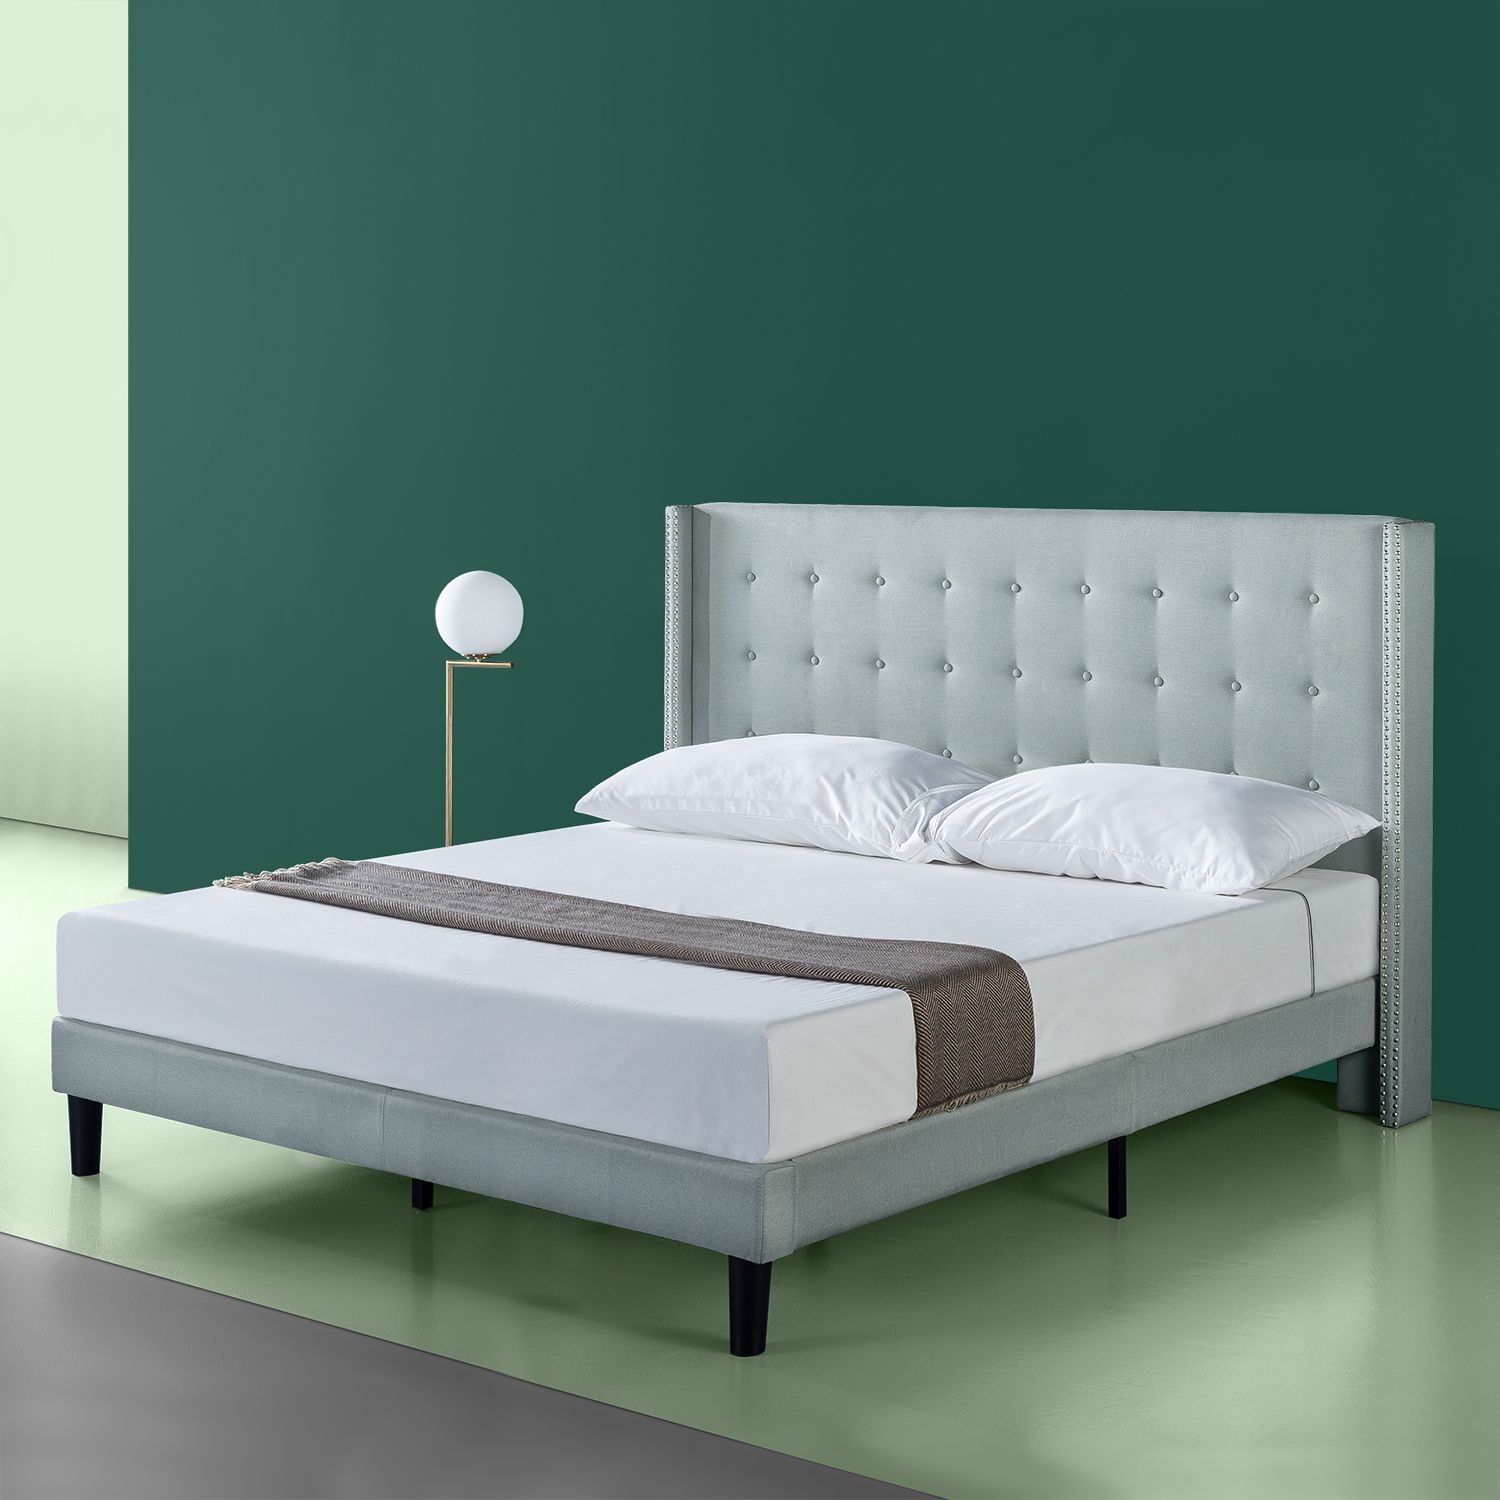 Home In 2020 With Images Platform Bed Platform Bed Frame Bed